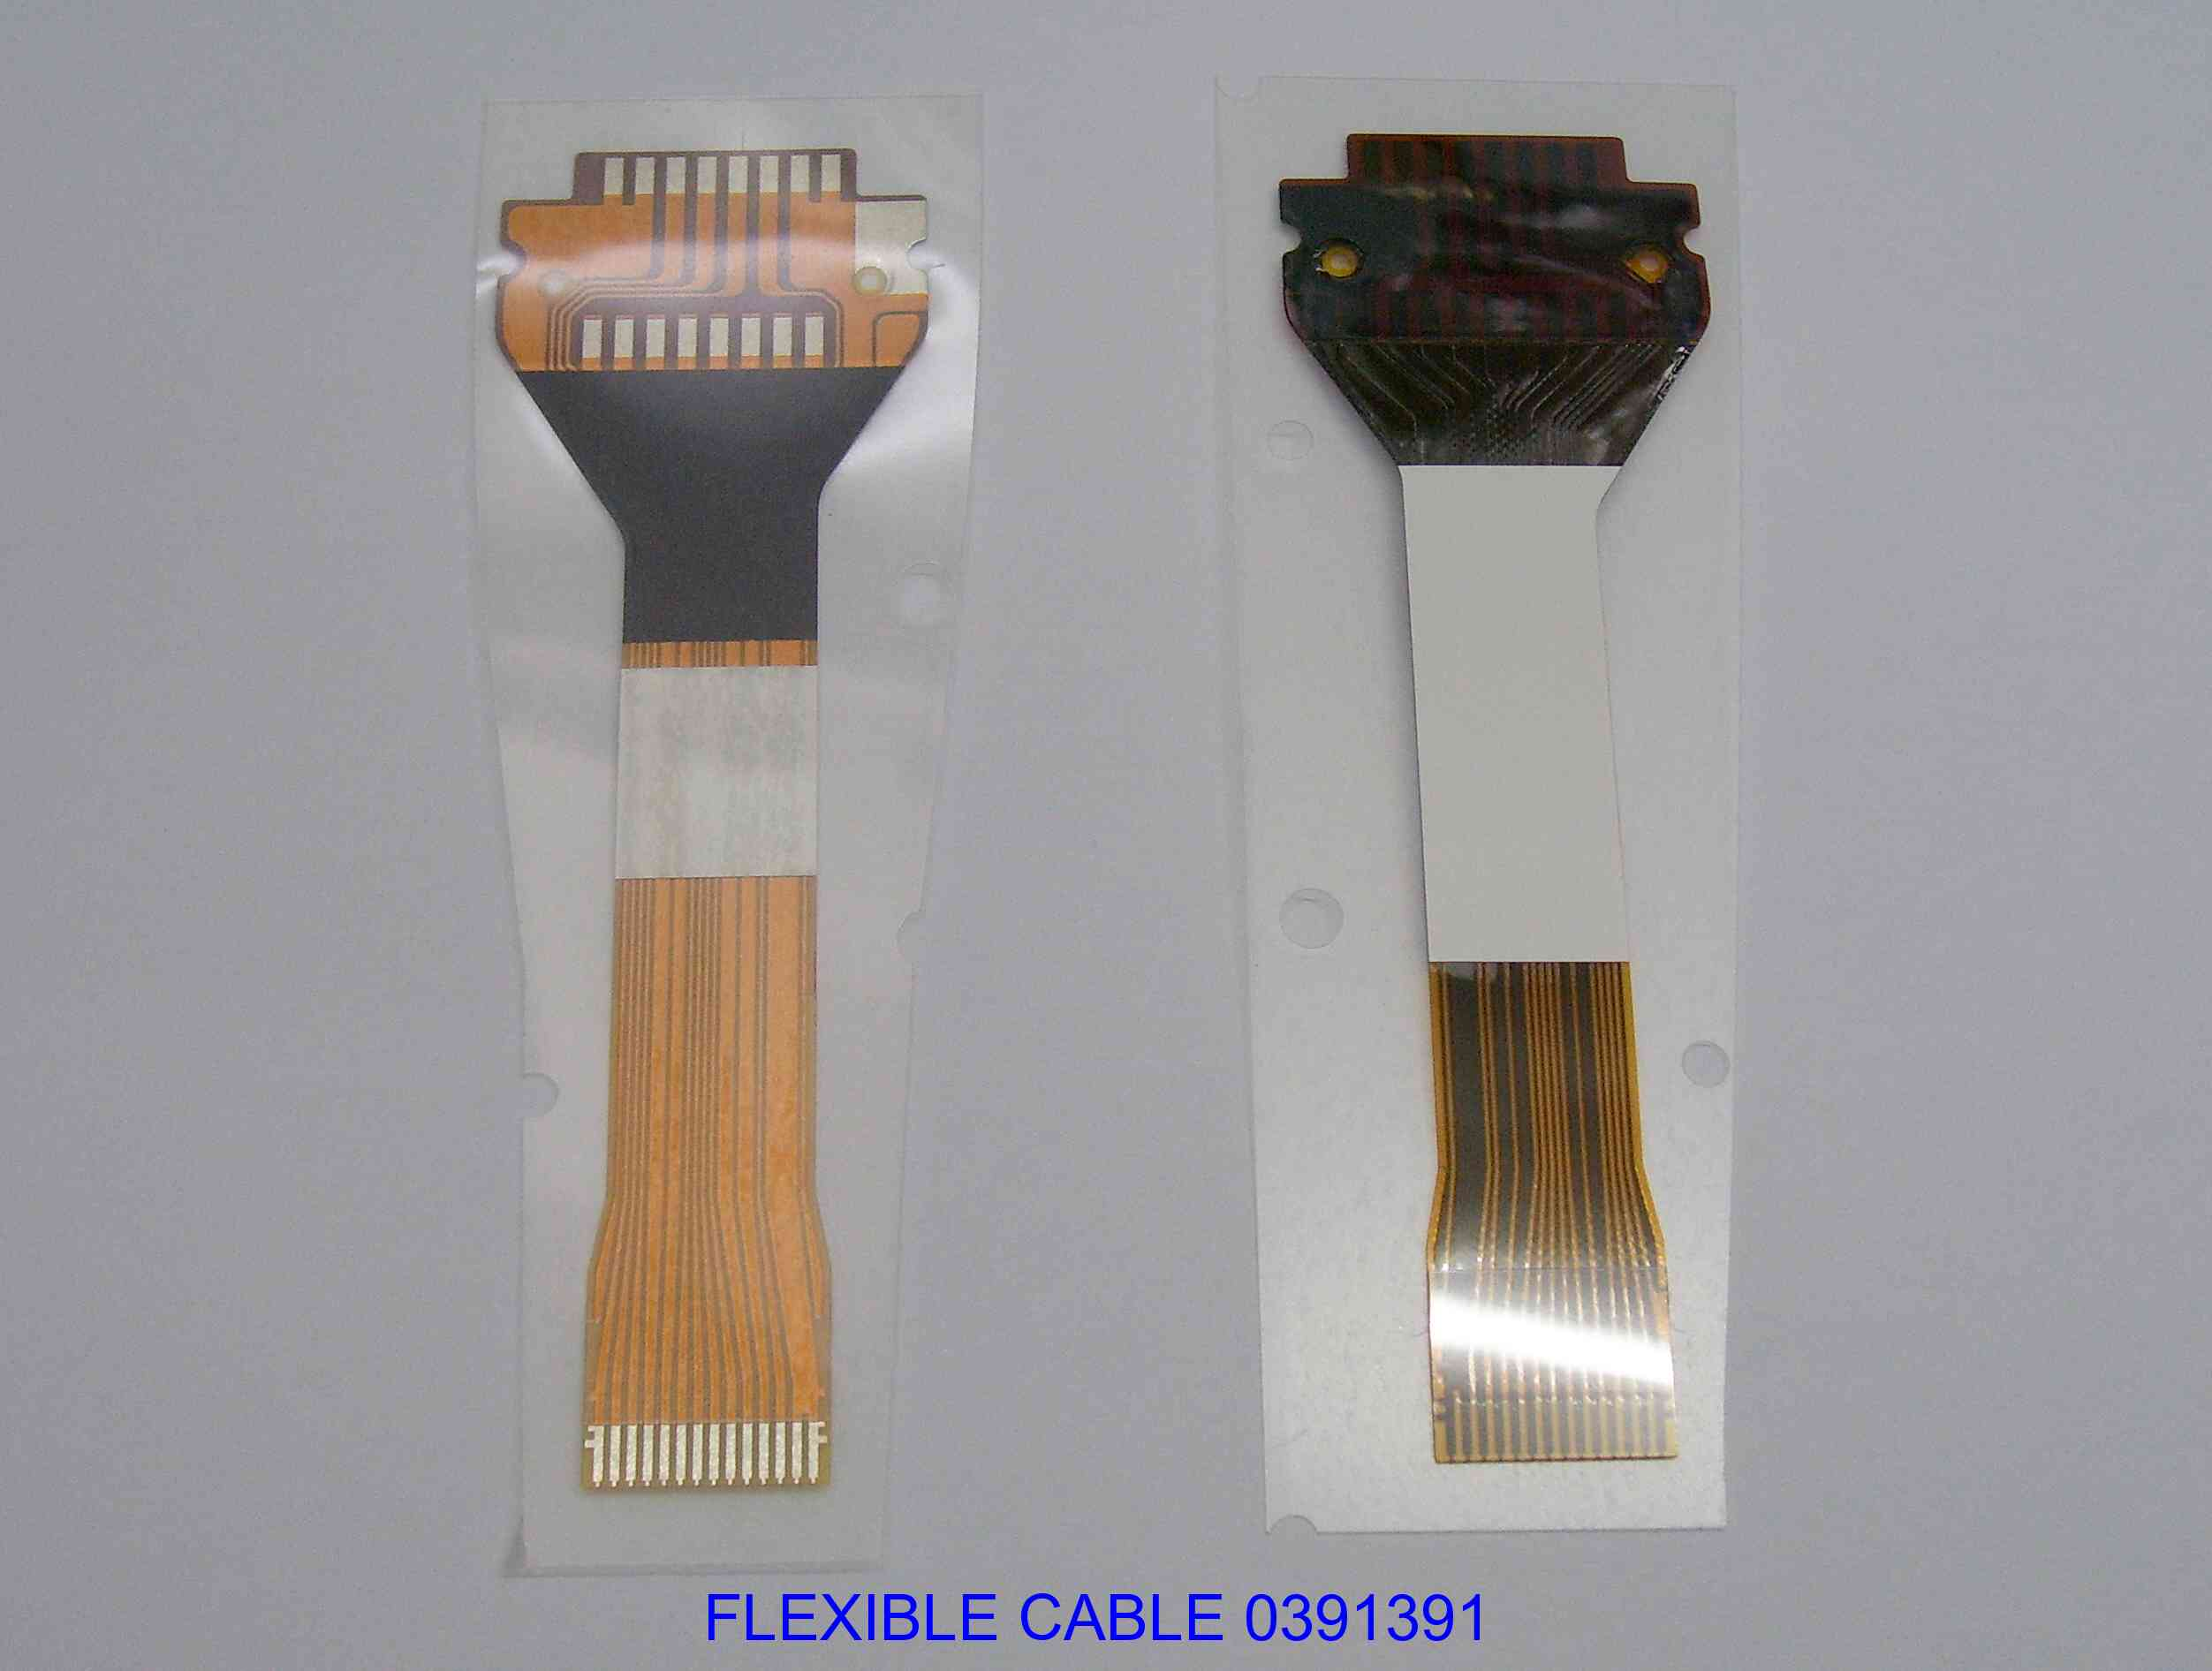 FLAT CABLE 039139100